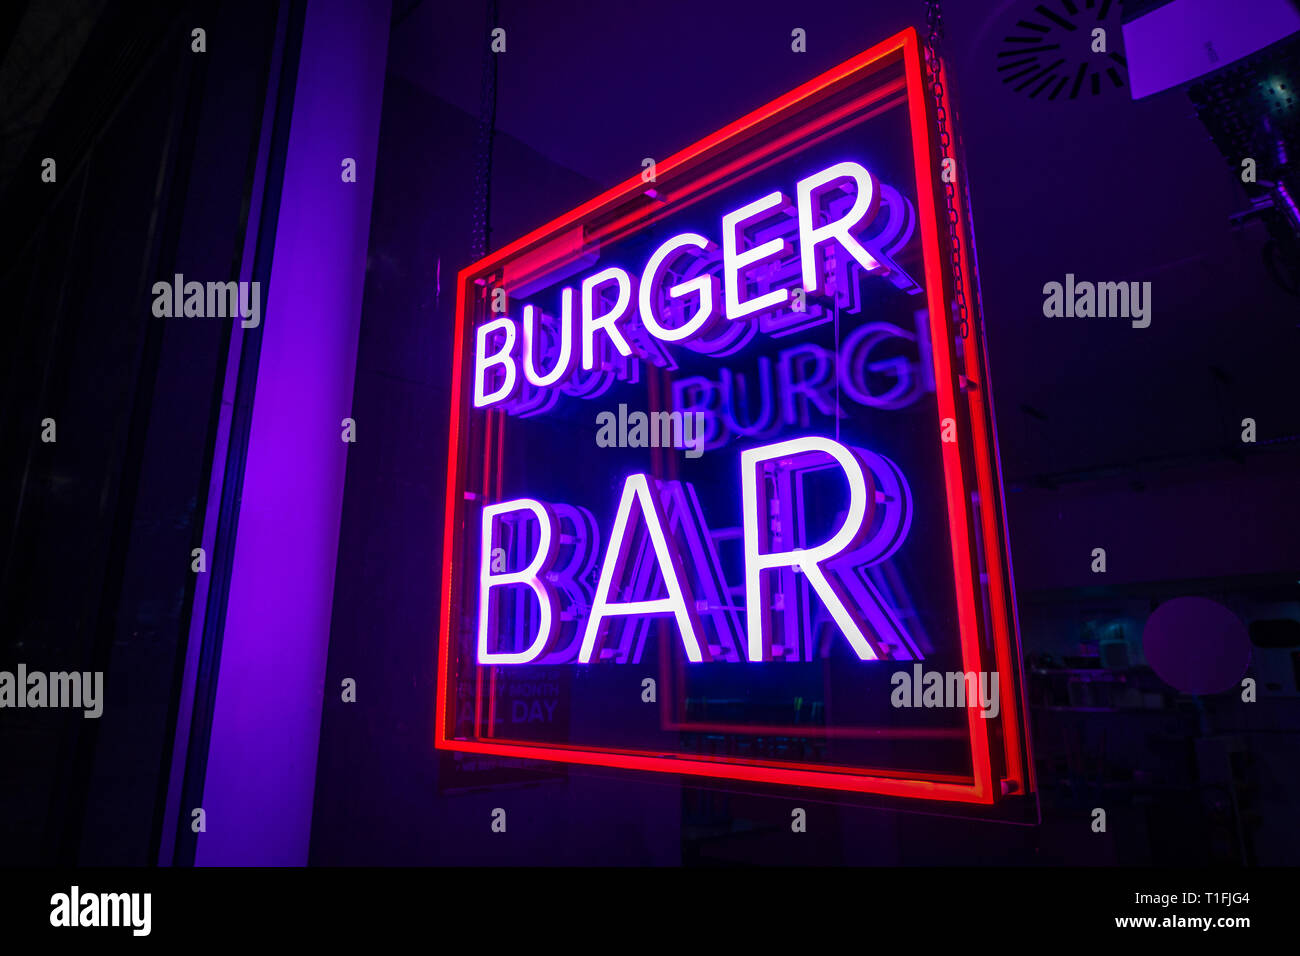 Burger Bar square Neon Sign lit up in a restaurant near Granary